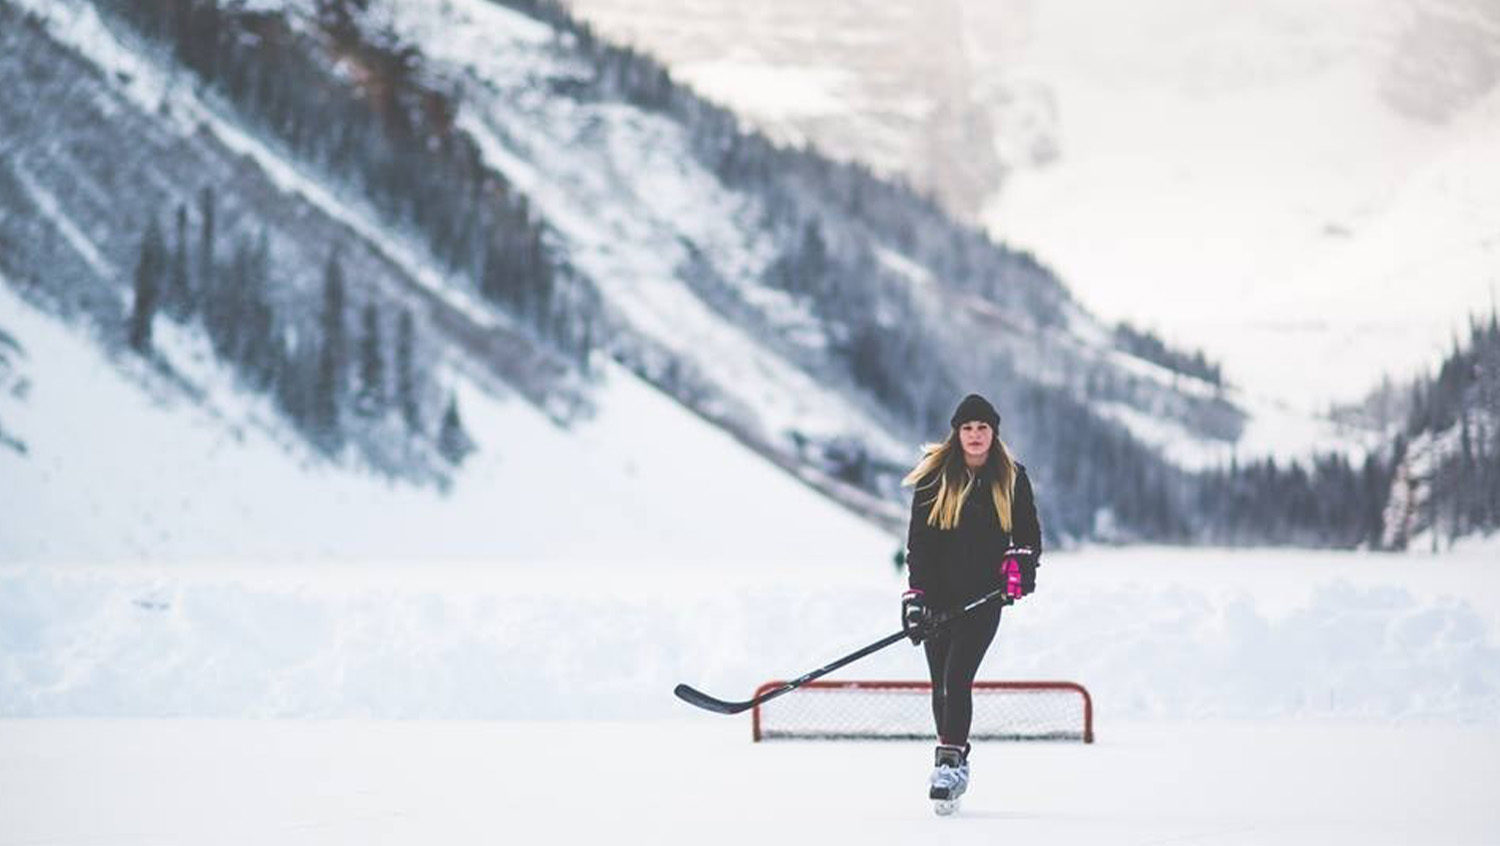 banff national park winter jobs